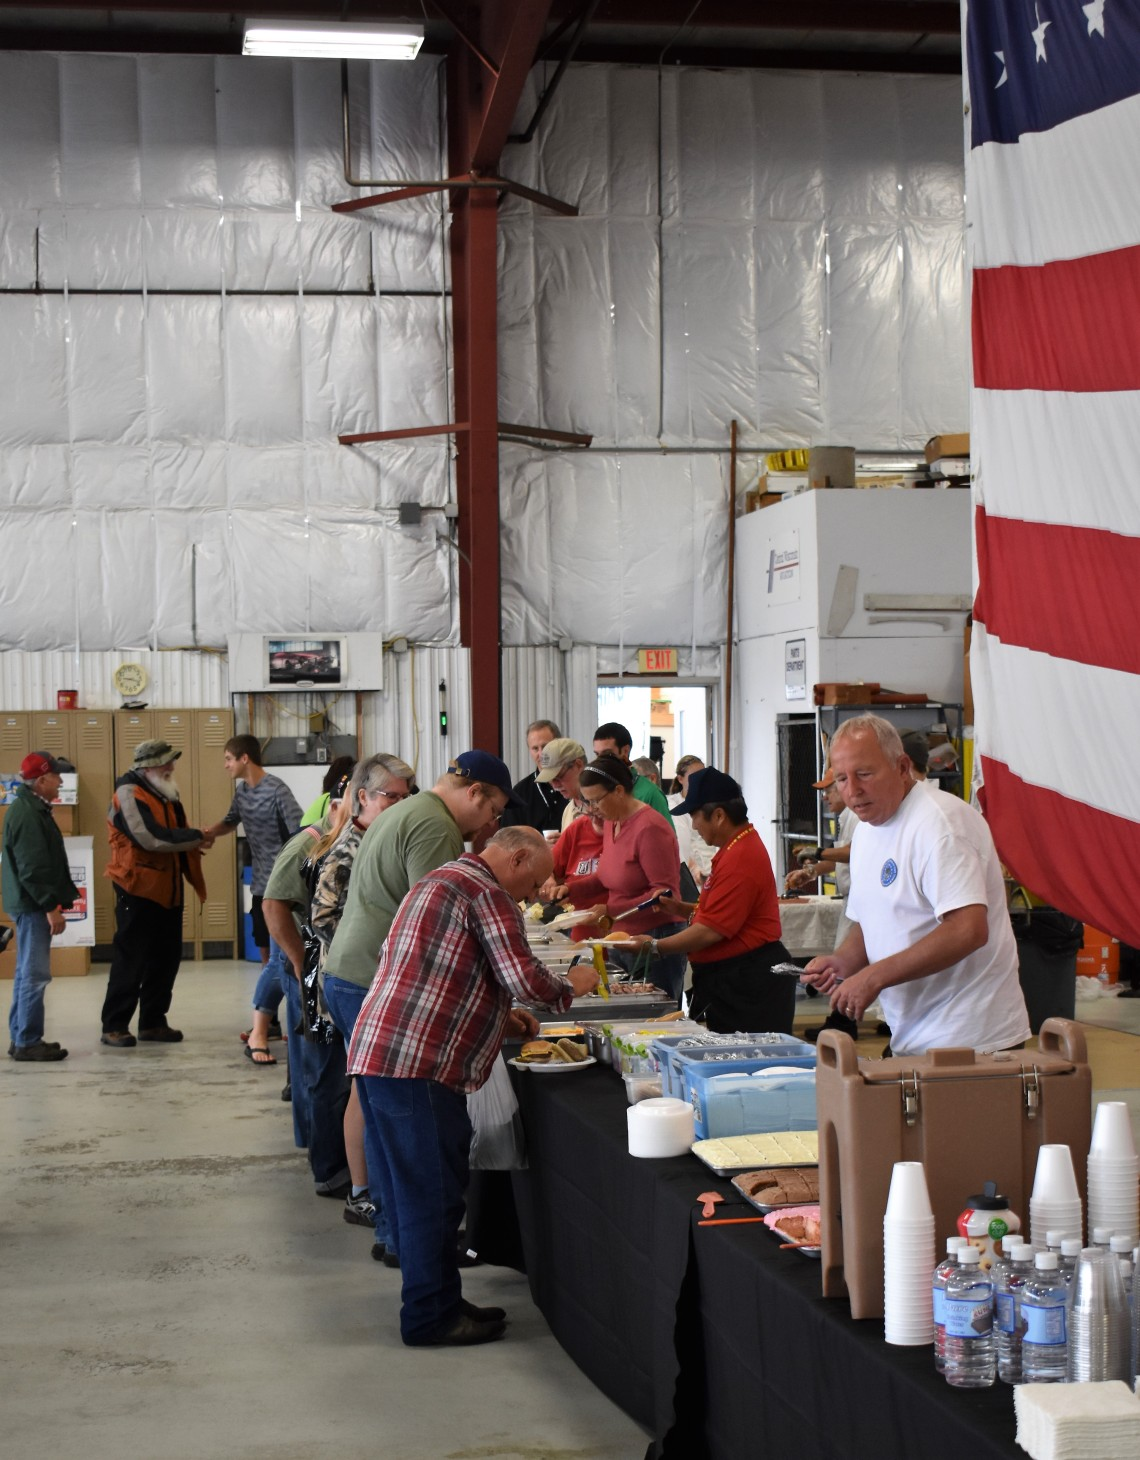 CWA_Warbirds_Event_Meal